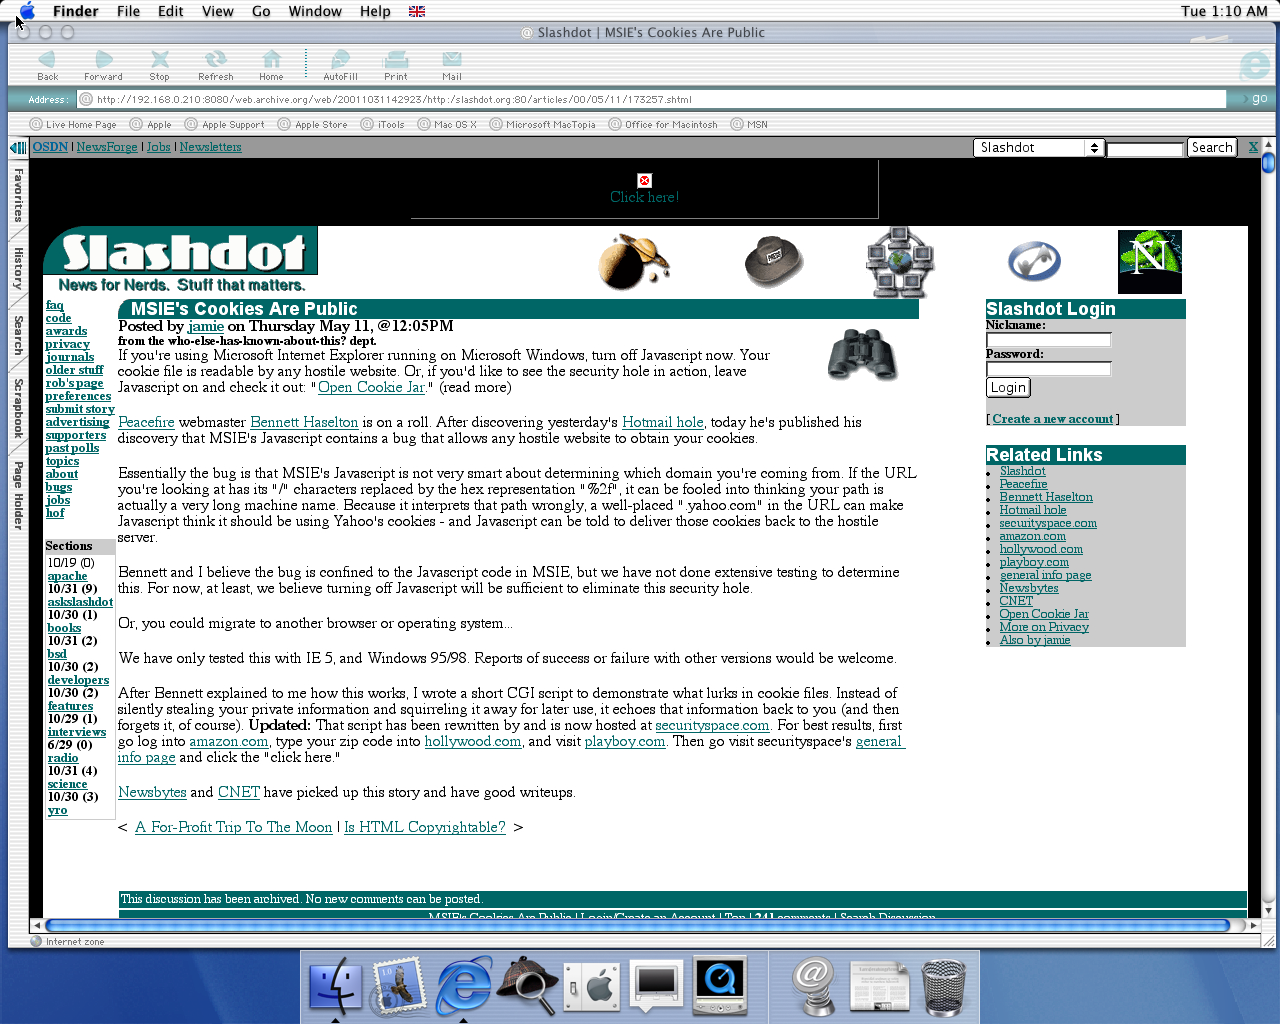 OS X 10.0 PPC with Microsoft Internet Explorer 5.1 for Mac Preview displaying a page from Slashdot archived at October 31, 2001 at 14:29:23